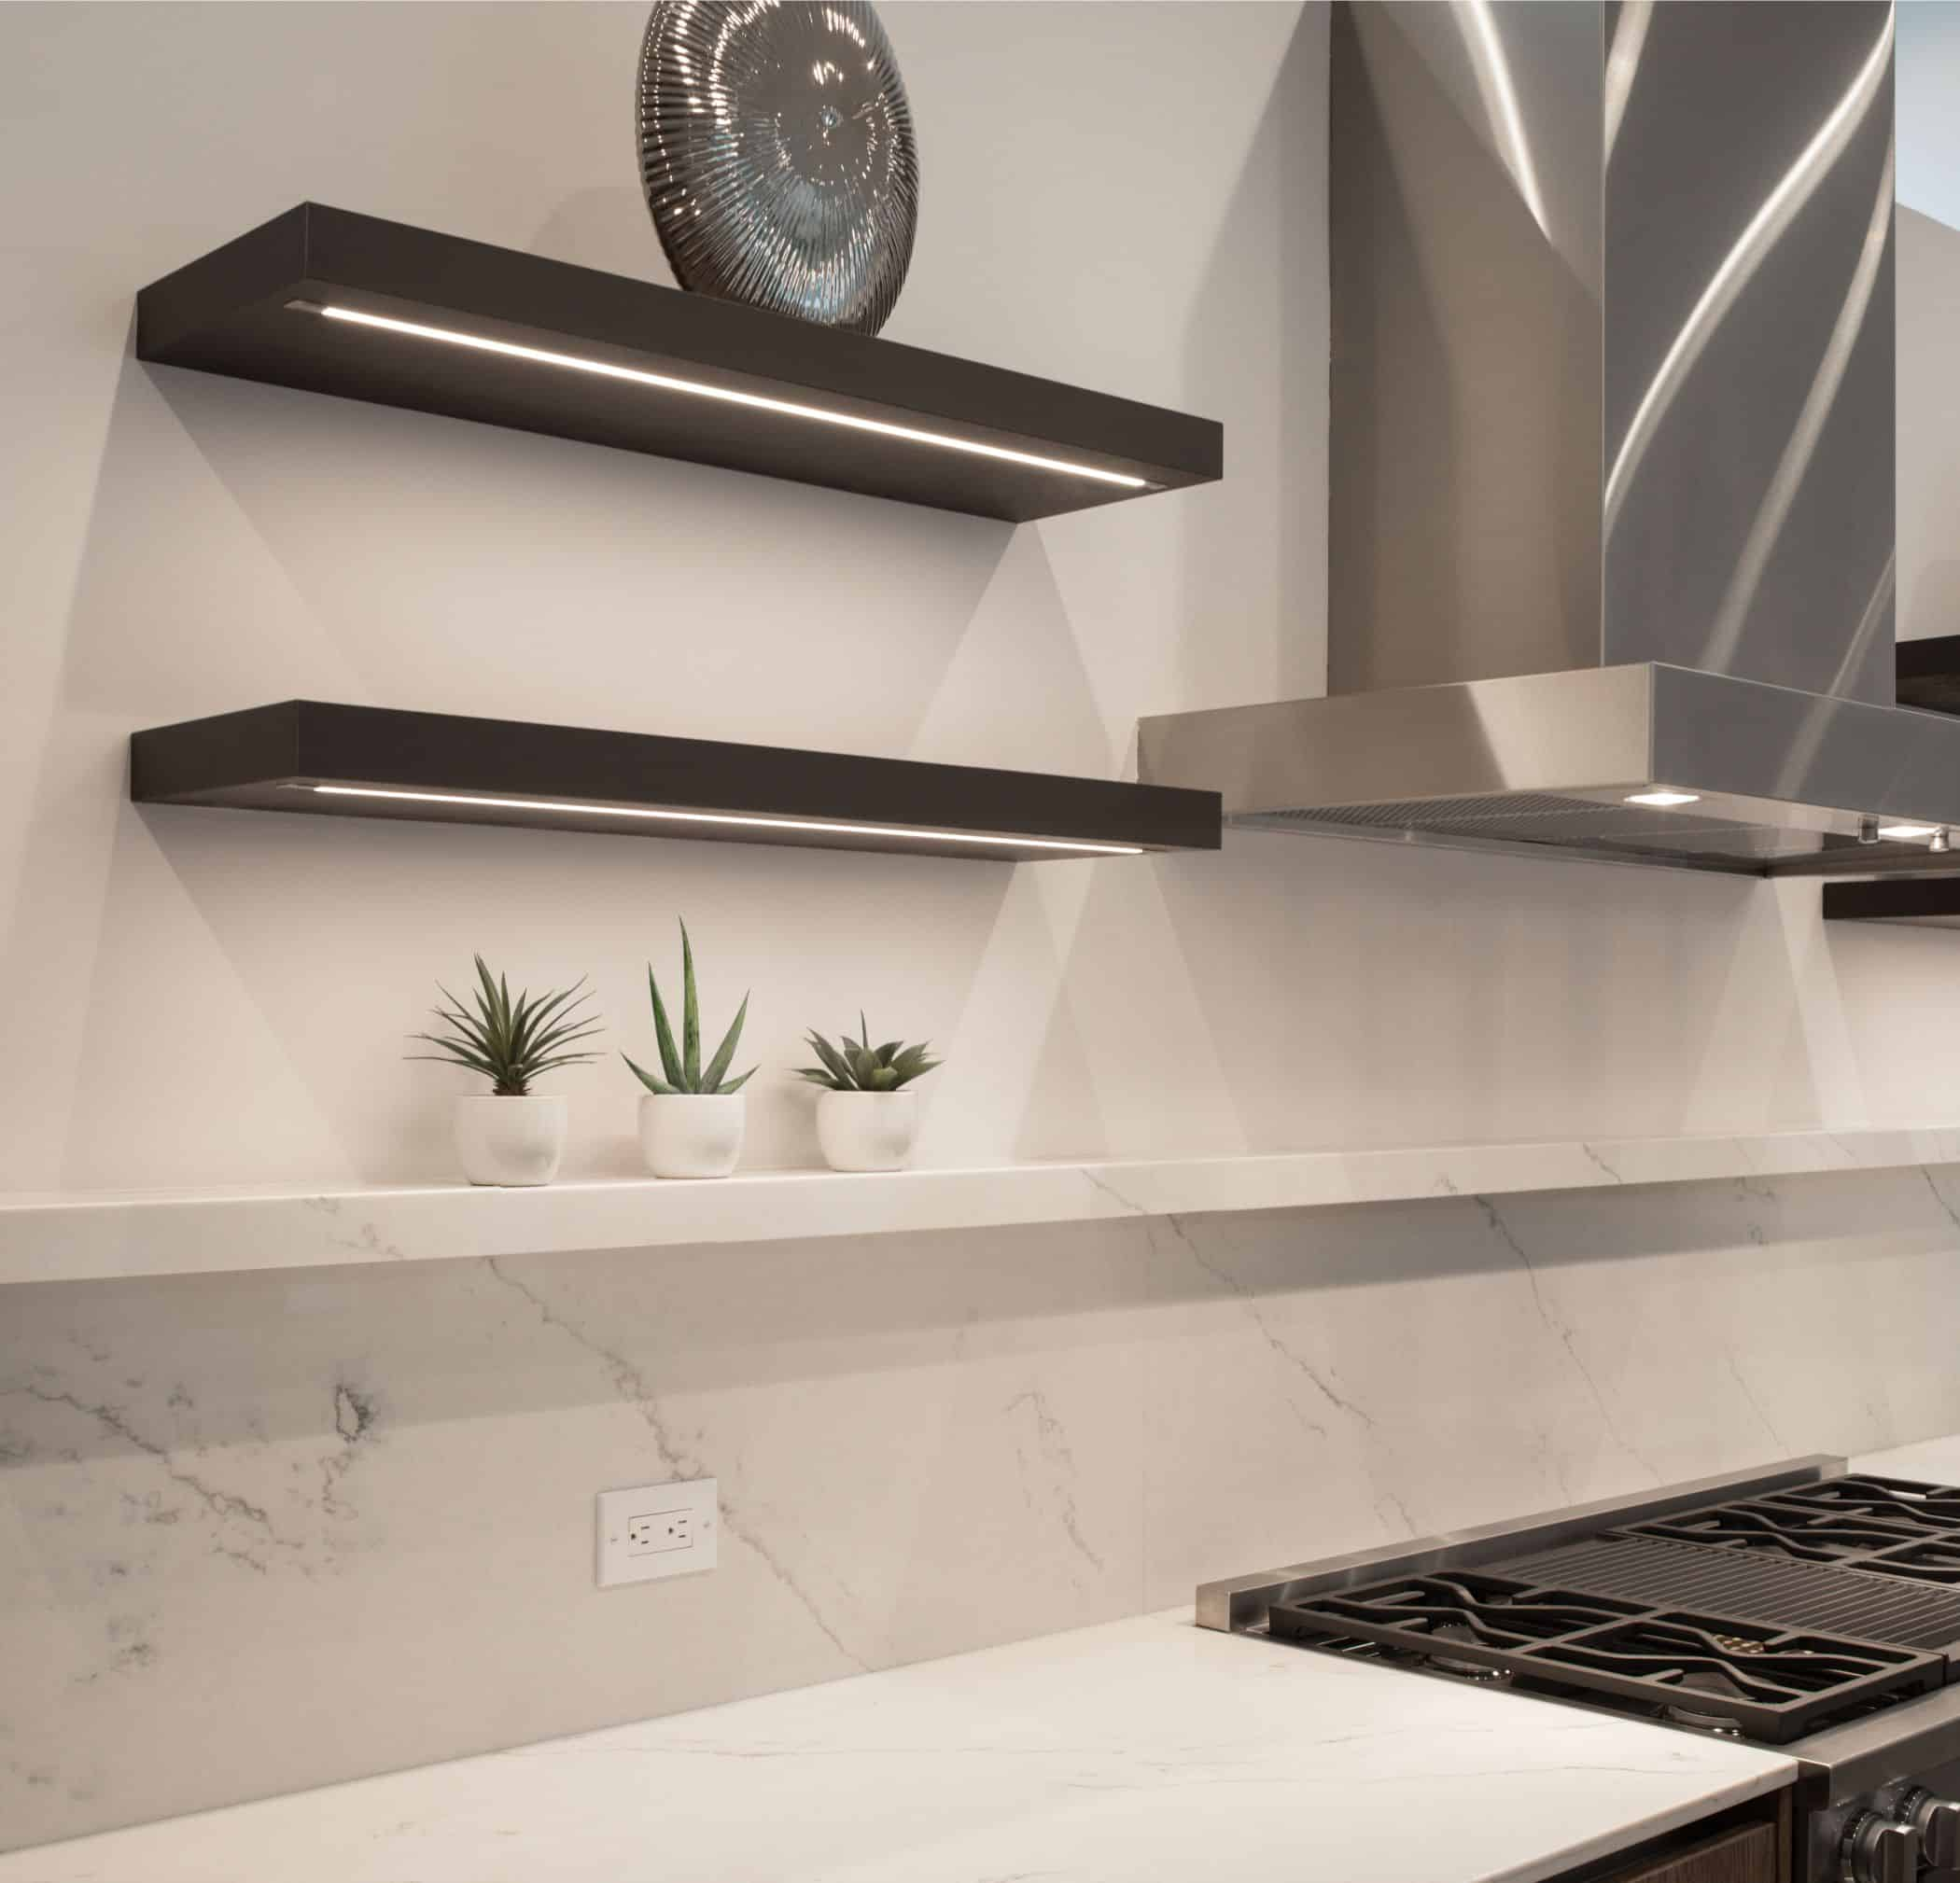 closeup of the new stove with raised ledge detail and display shelves in a washington coalition memorial park area home in houston